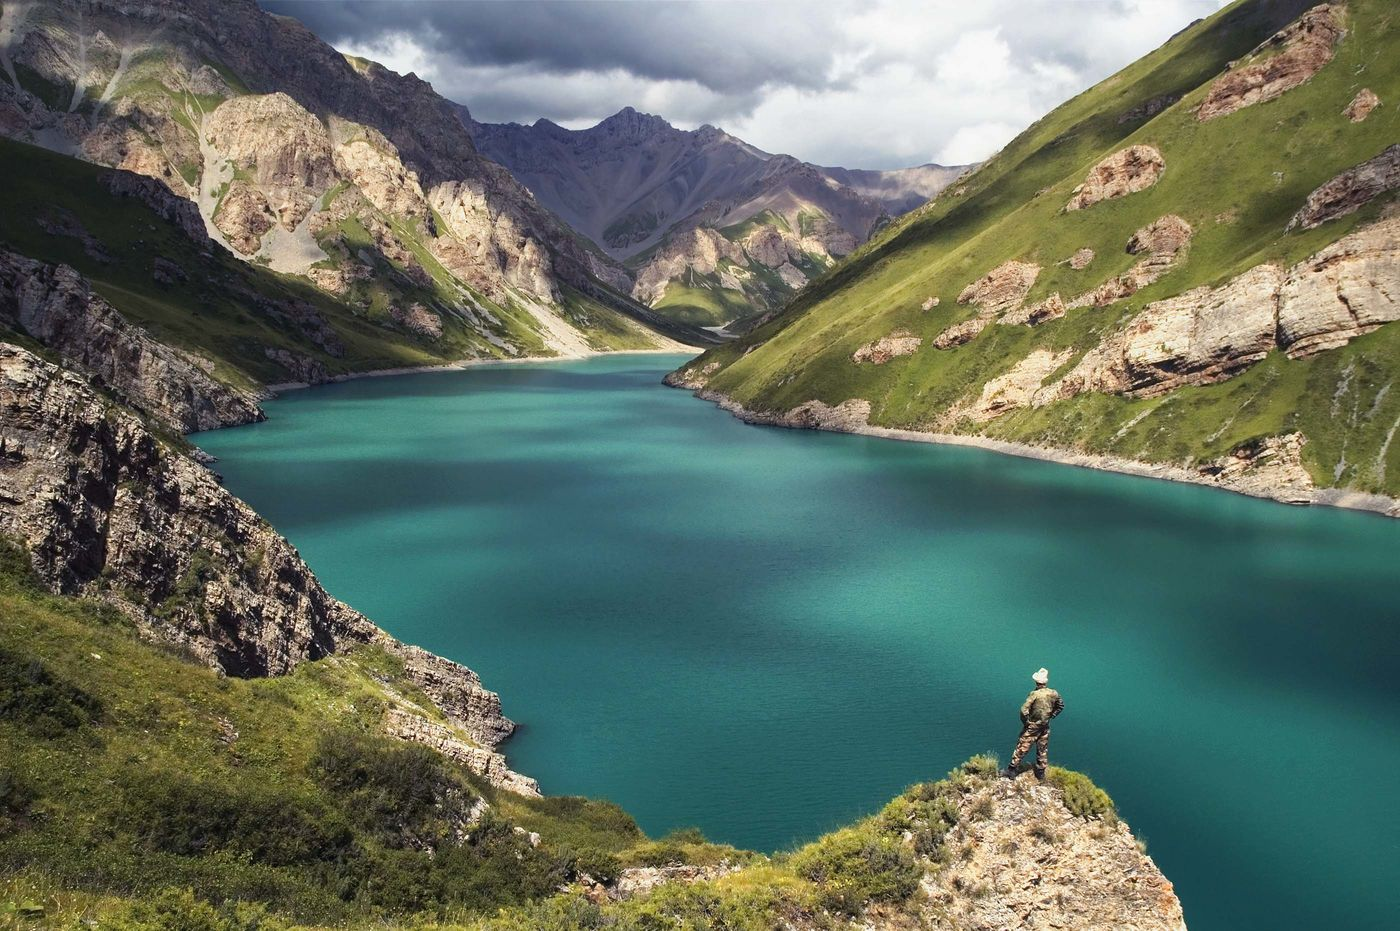 Kol Tor Lake, in northern Kyrgyzstan